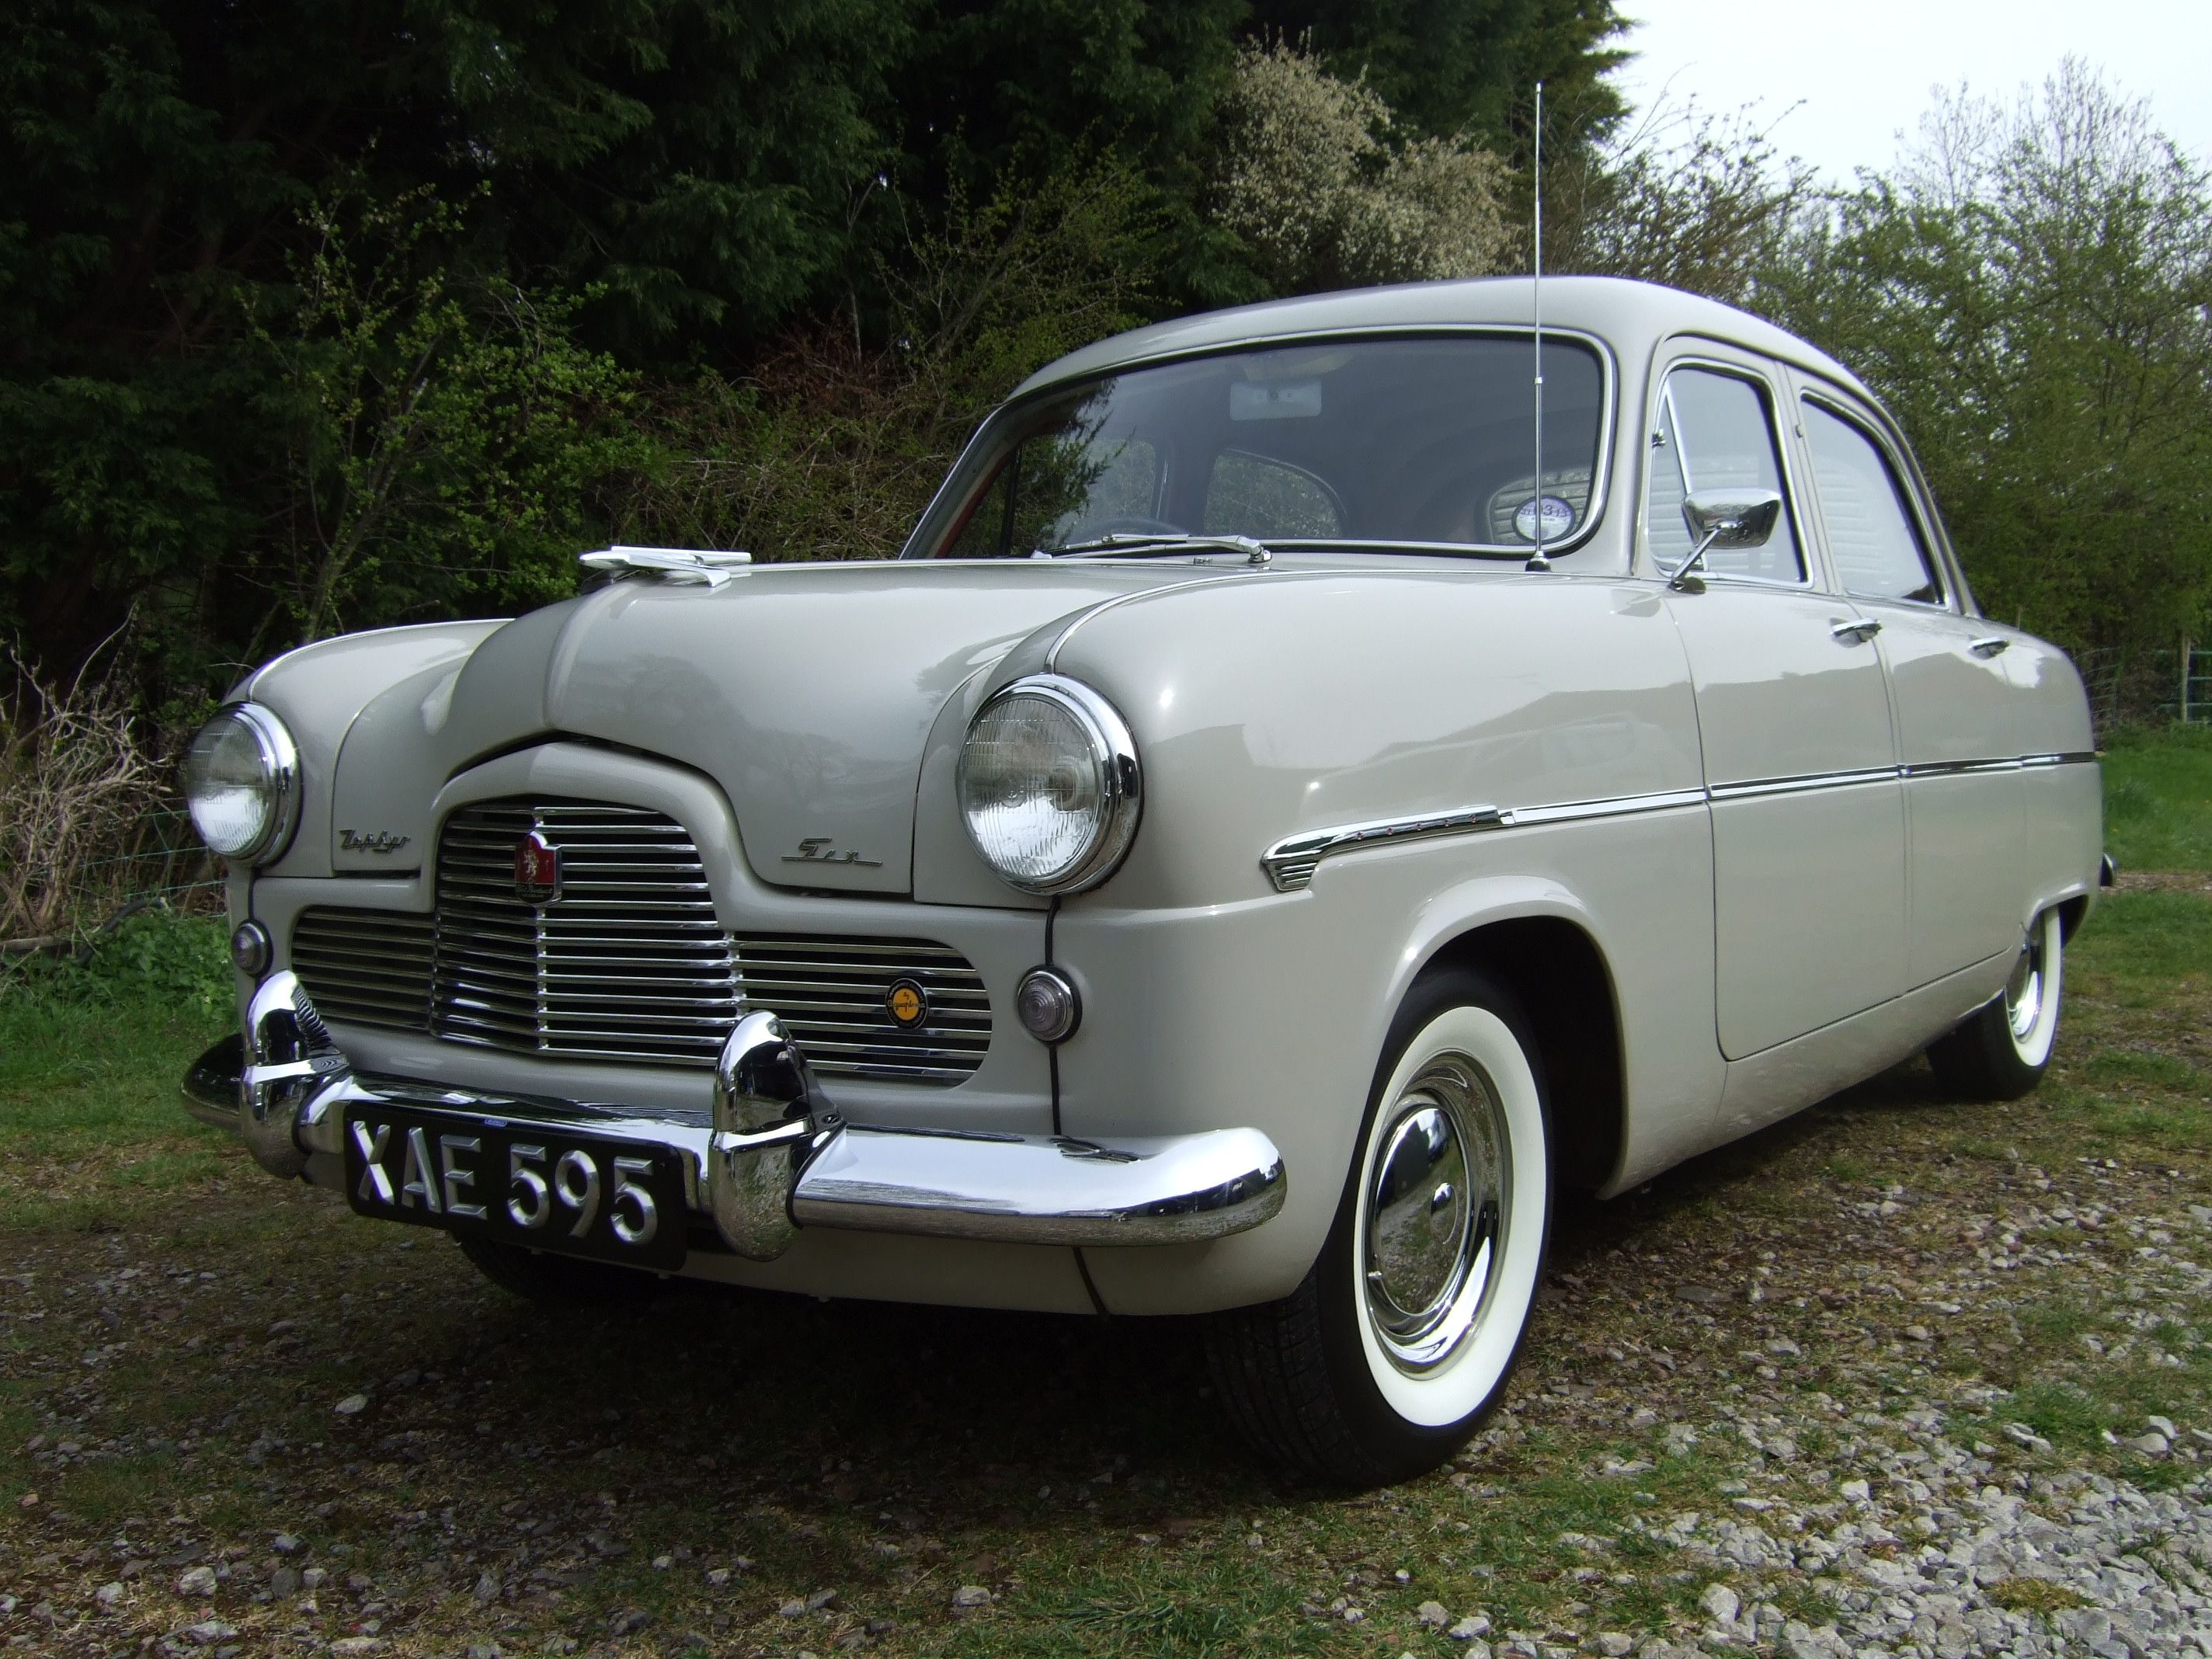 Mk1 Zephyr Saloon 1954 Ford Zephyr British Cars Retro Cars